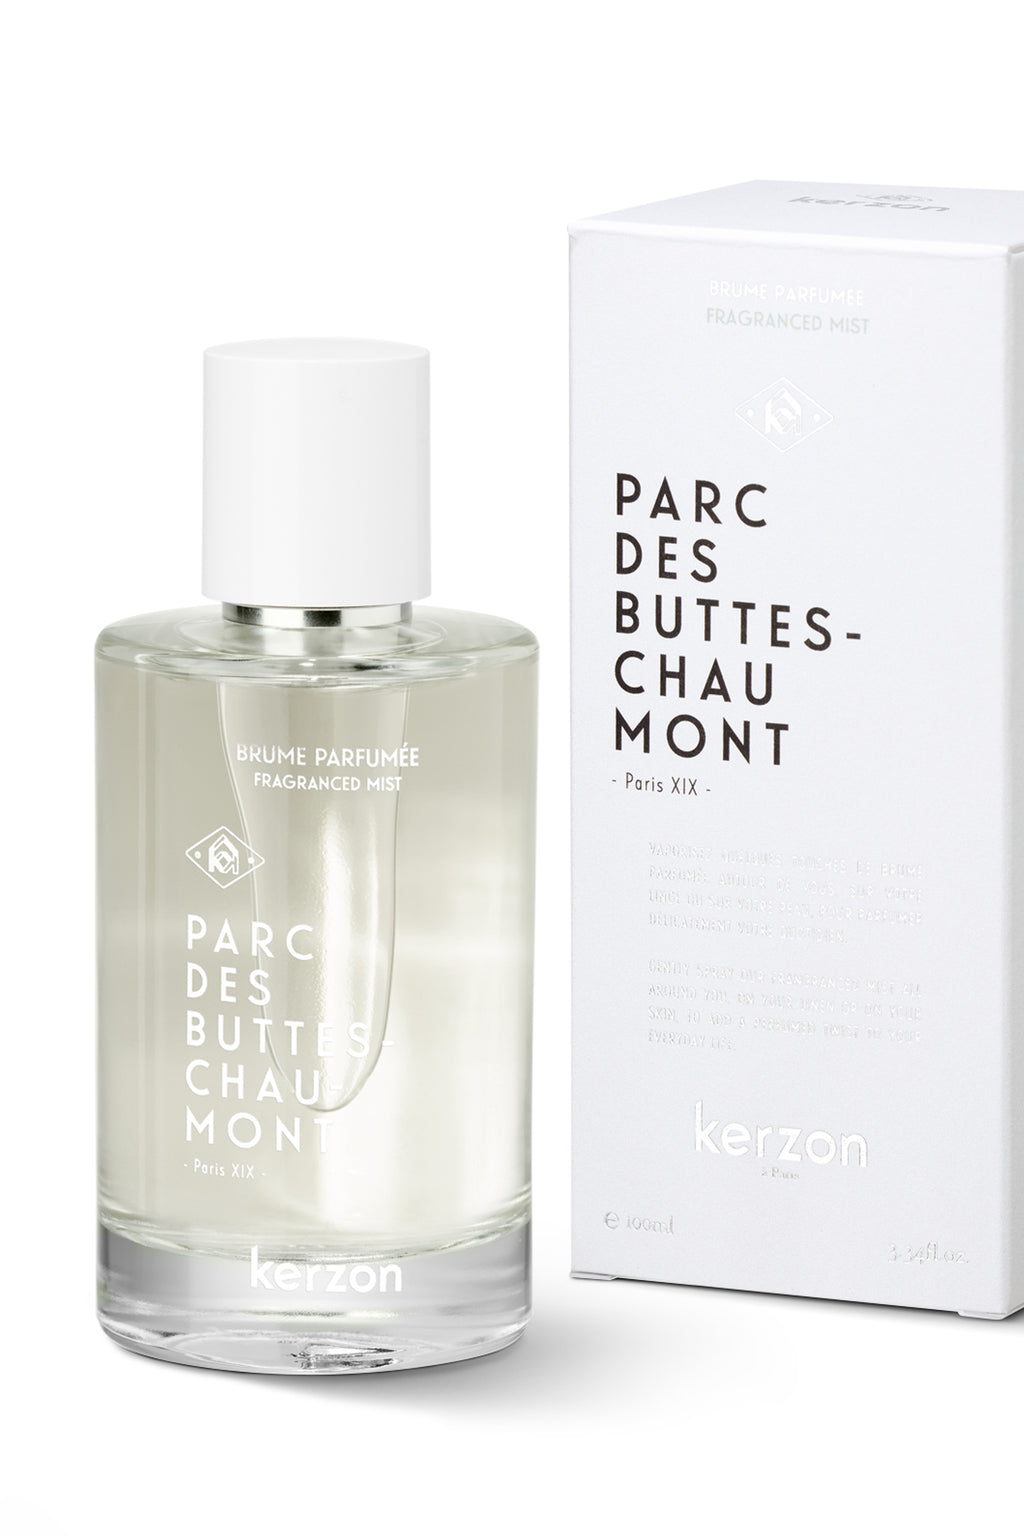 Kerzon Parc Des Buttes-Chaumont Eau De Toilette - The Mercantile London